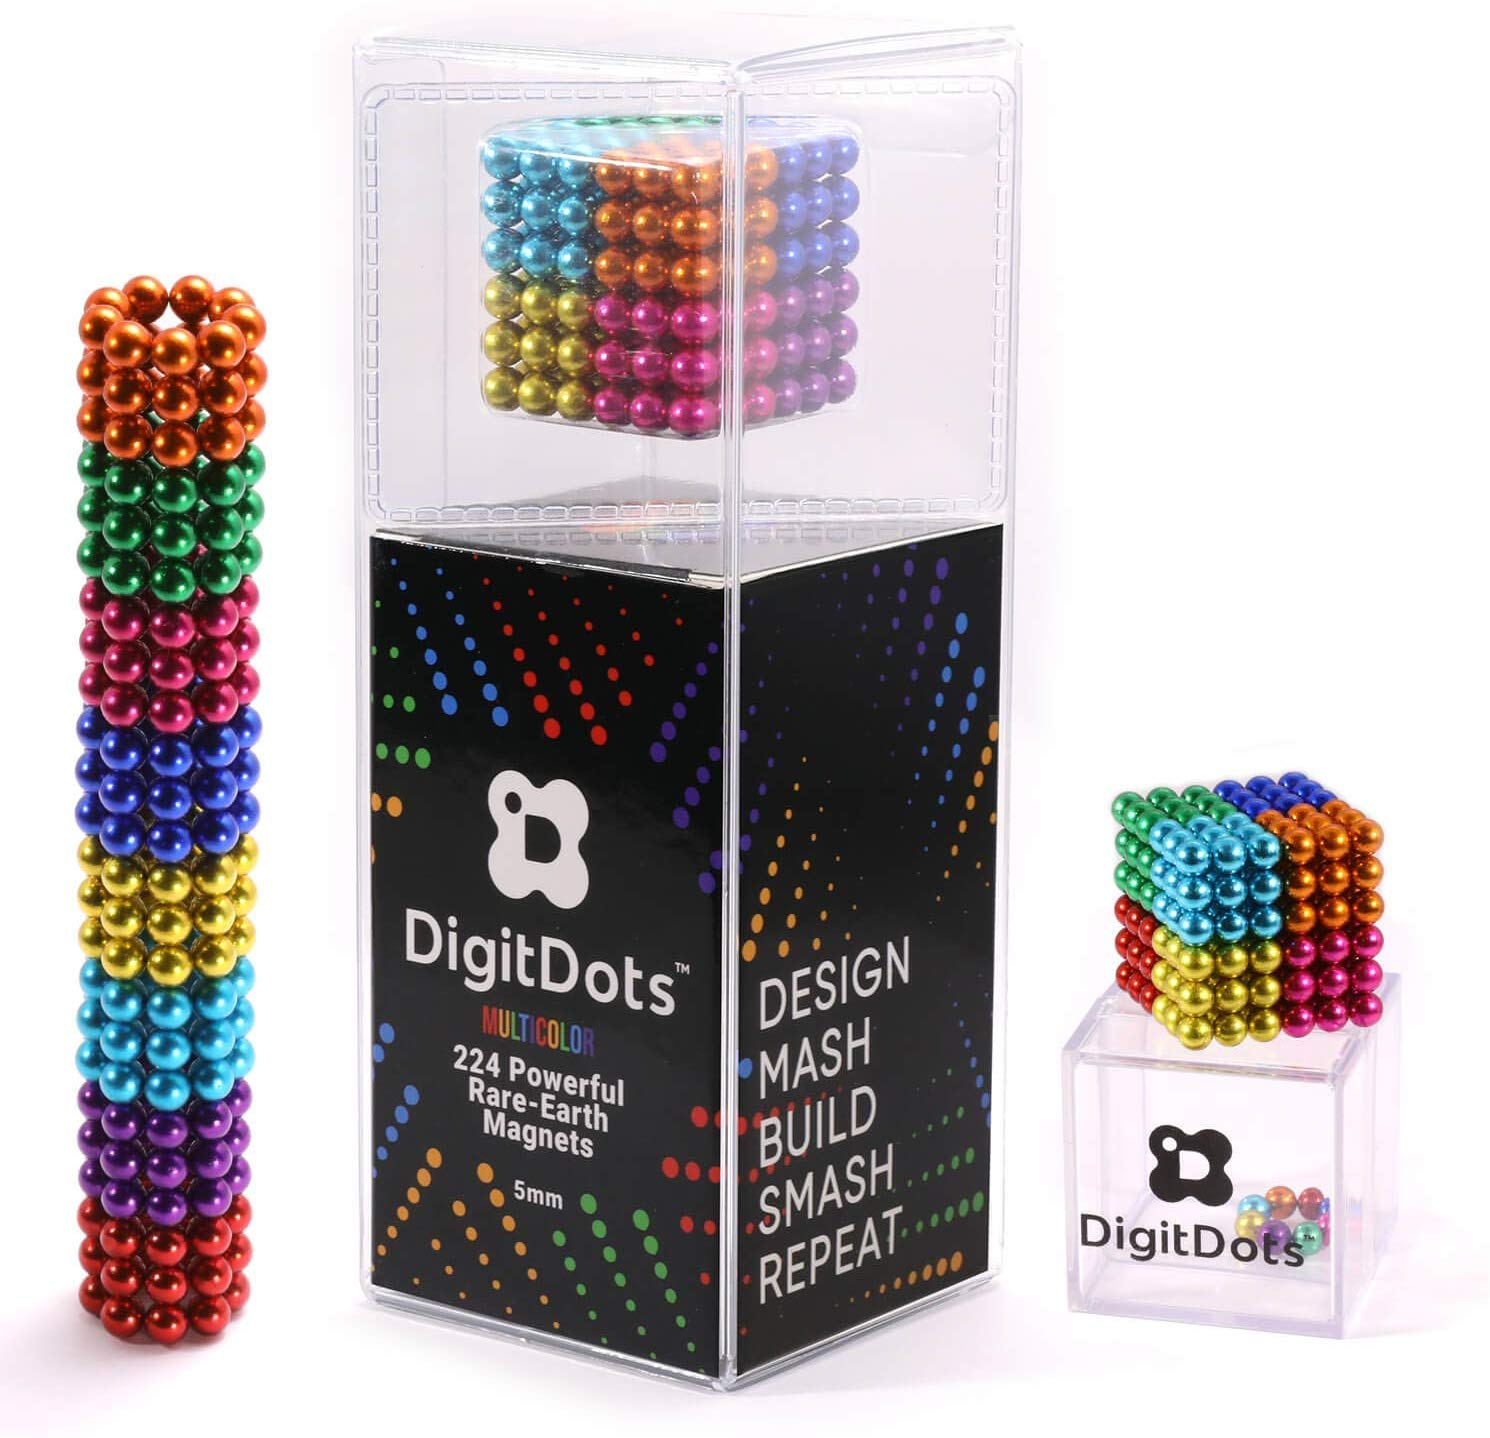 BrainSpark DigitDots Multi Colored 224 Pieces 5mm Magnetic Balls 8 Colors